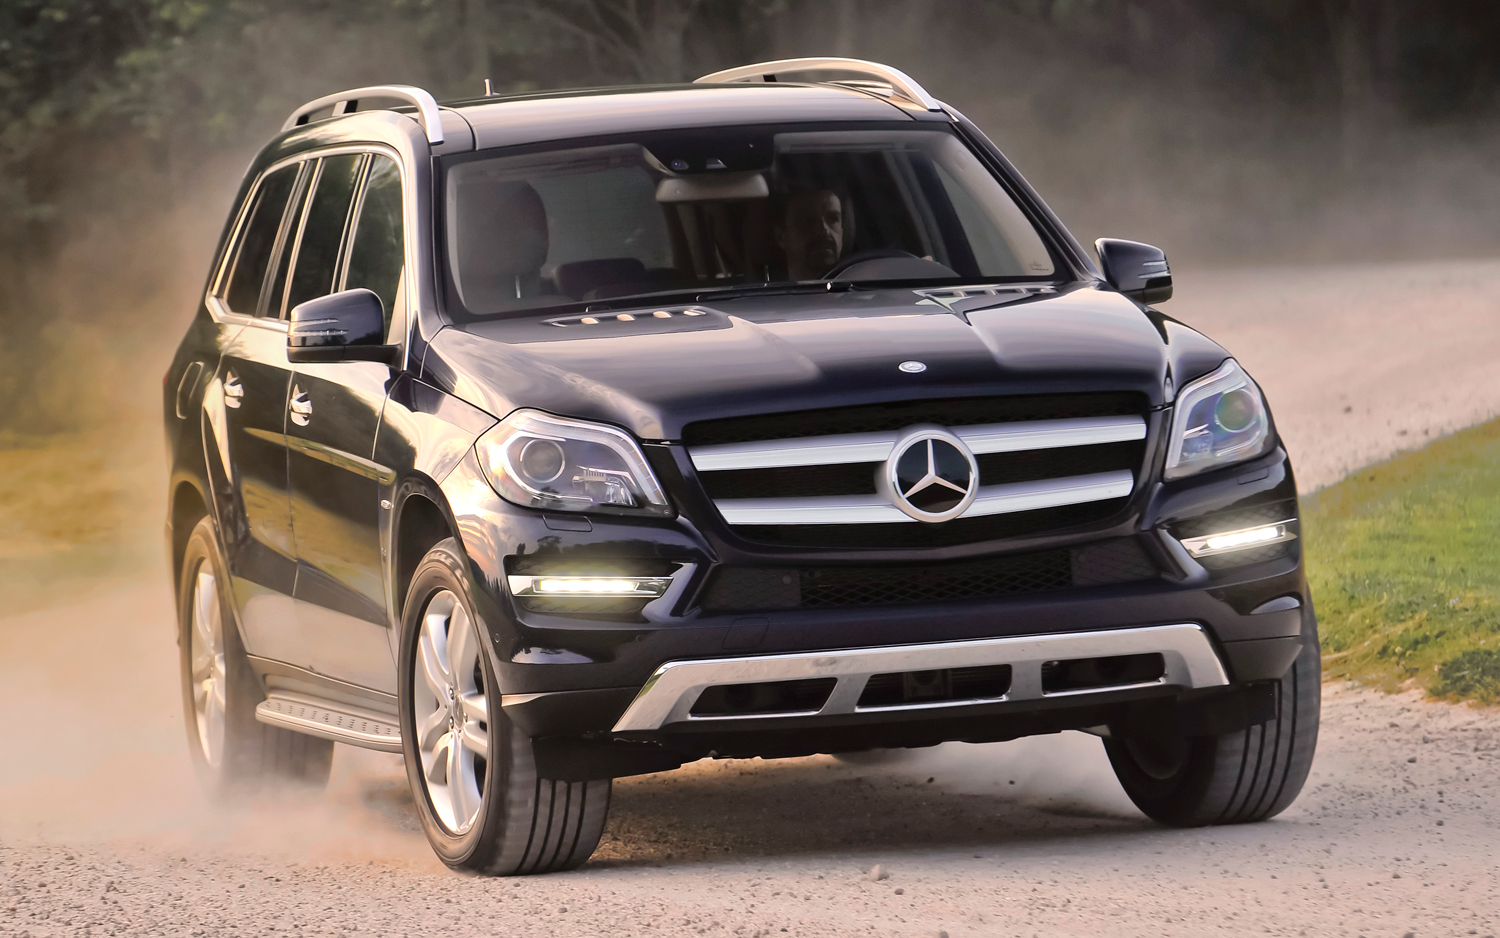 Mercedes benz gl 450 technical details history photos on for Gl mercedes benz